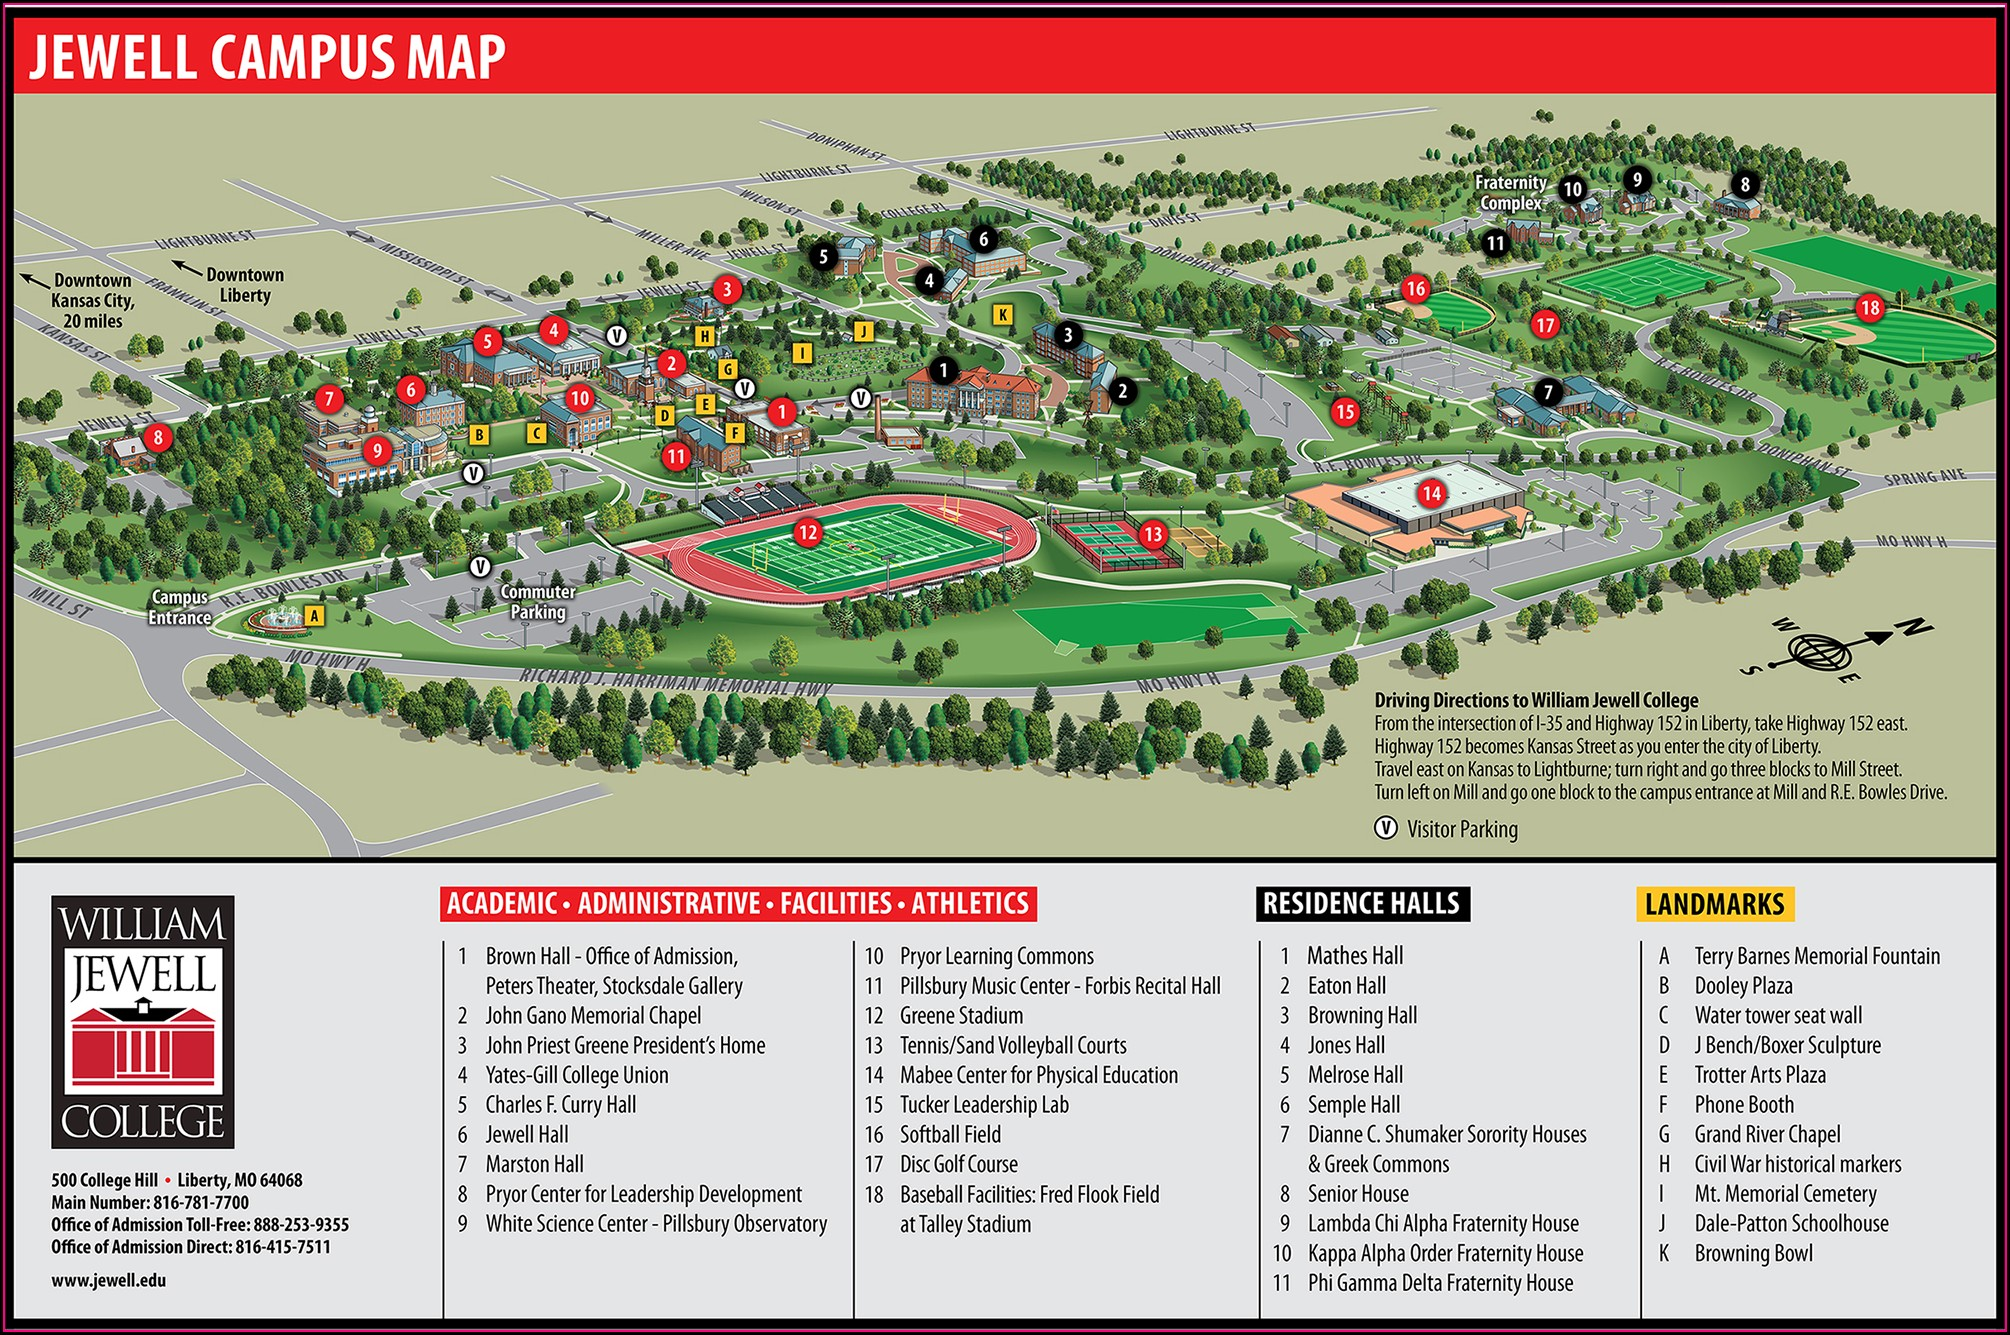 William Jewell College Campus Map